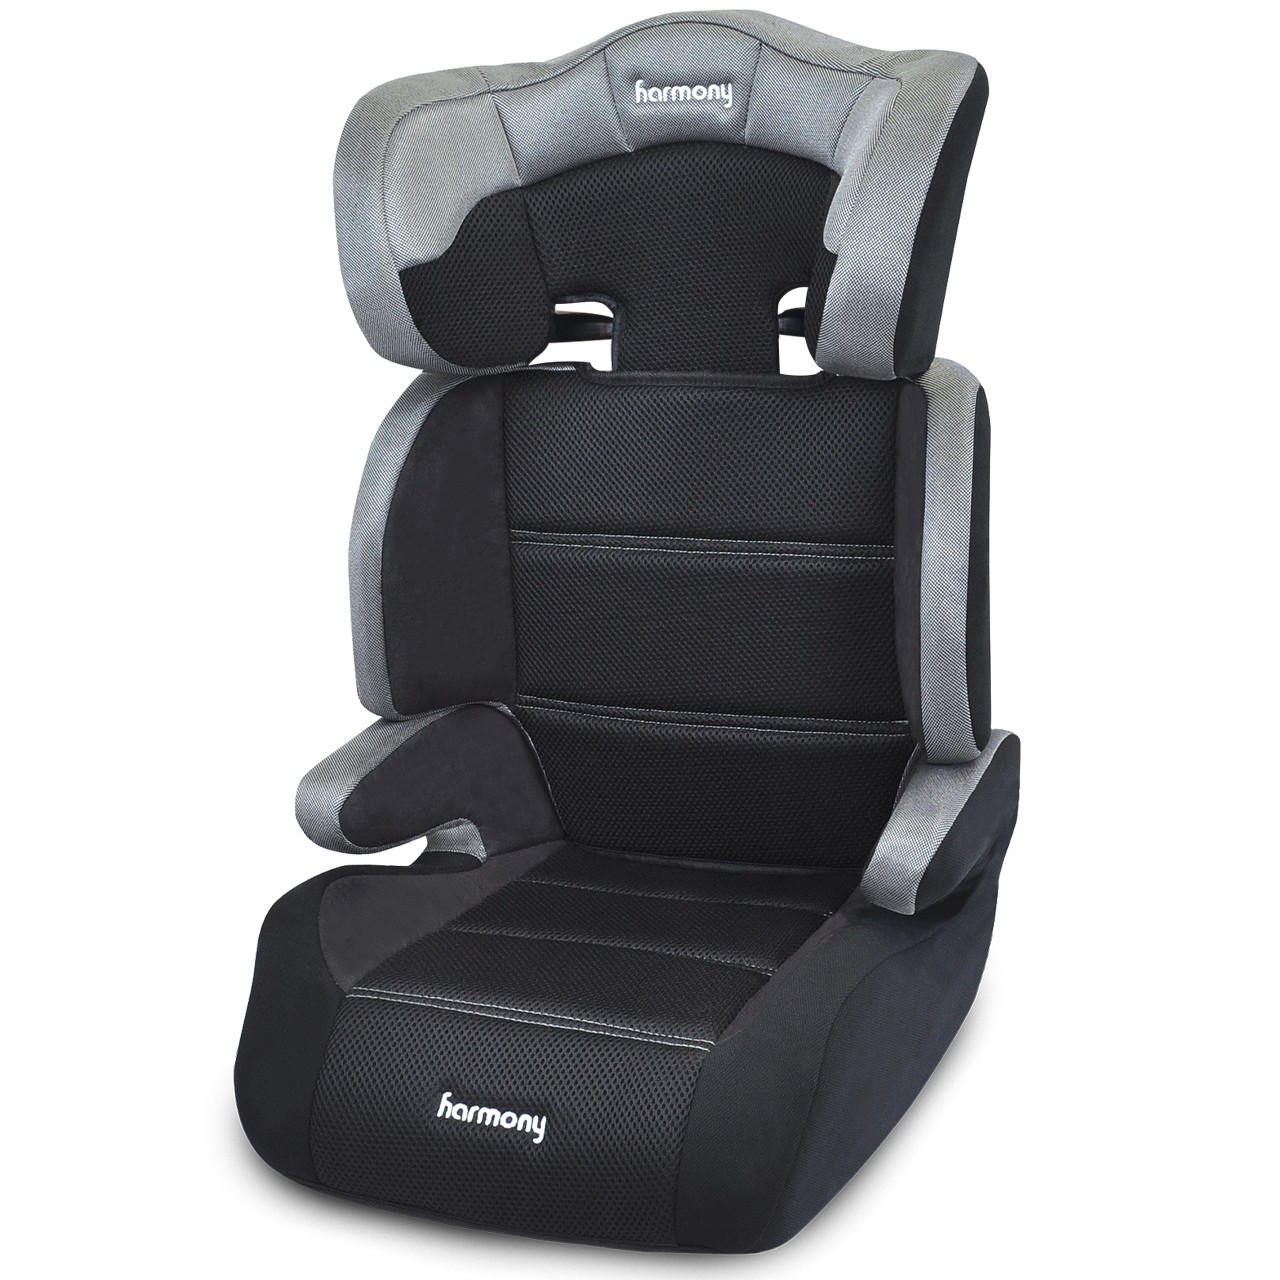 Dreamtime Deluxe Comfort Booster Car Seat - Silver Tech